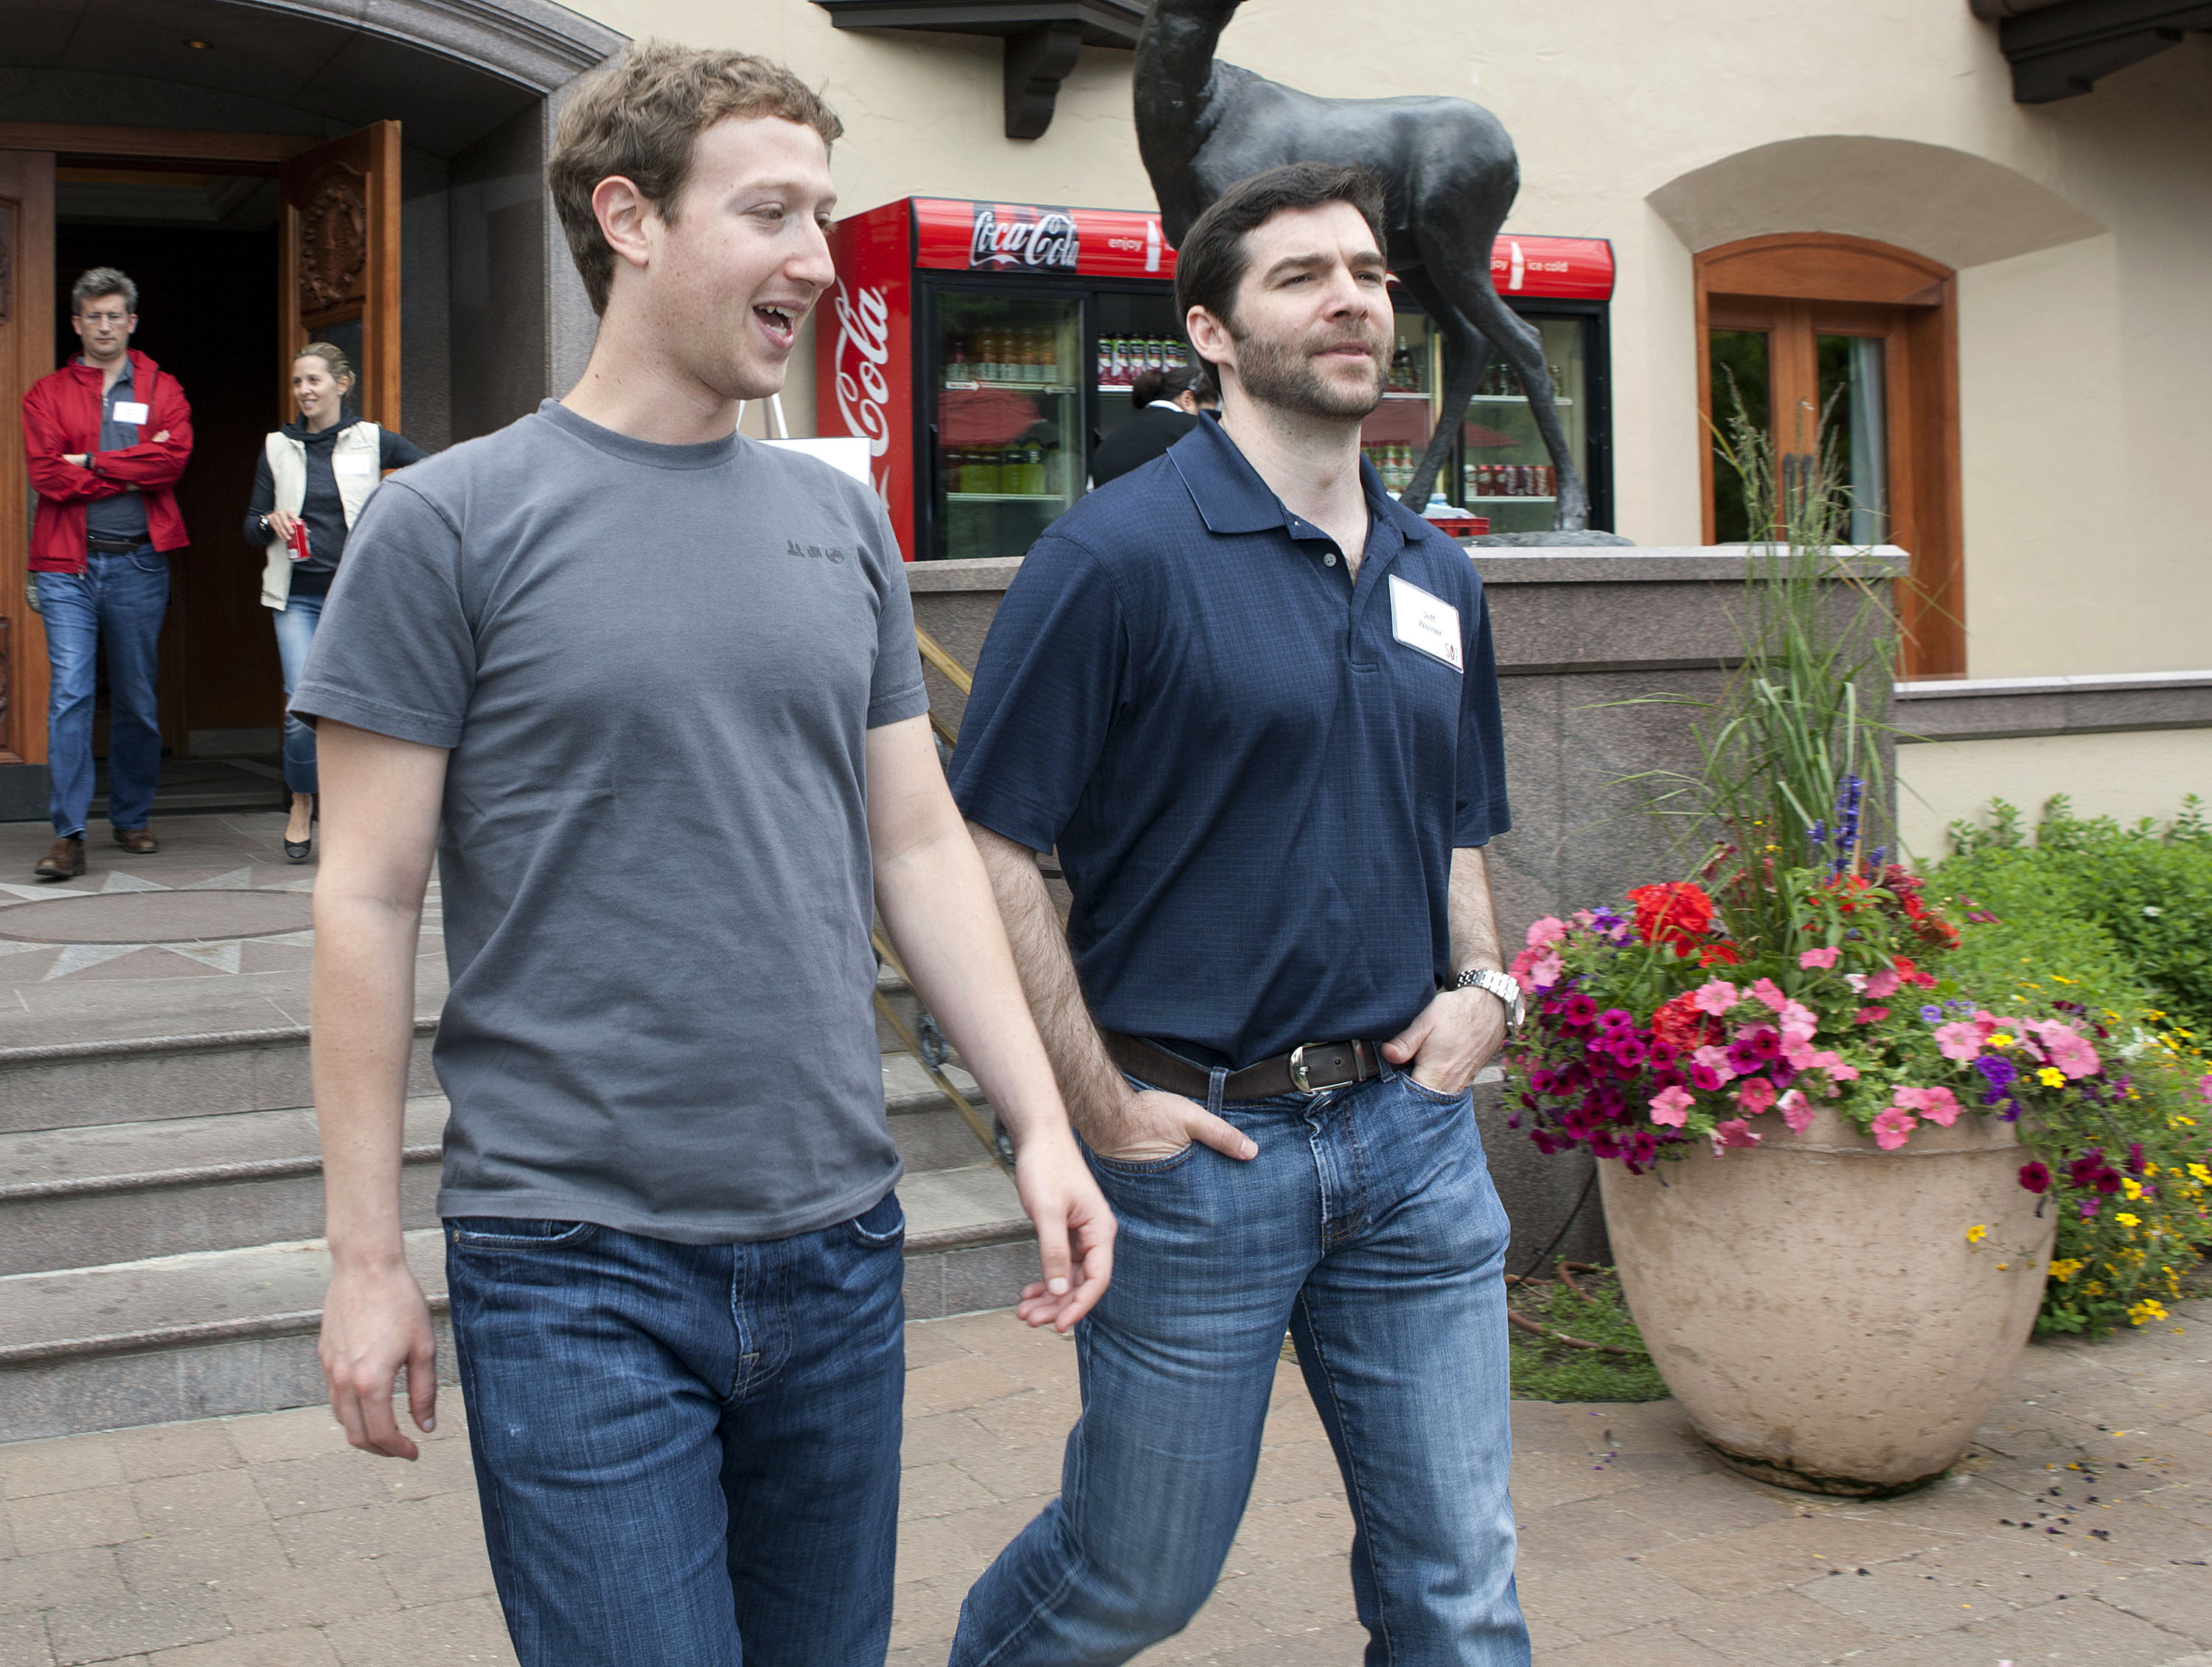 zuckerberg walking